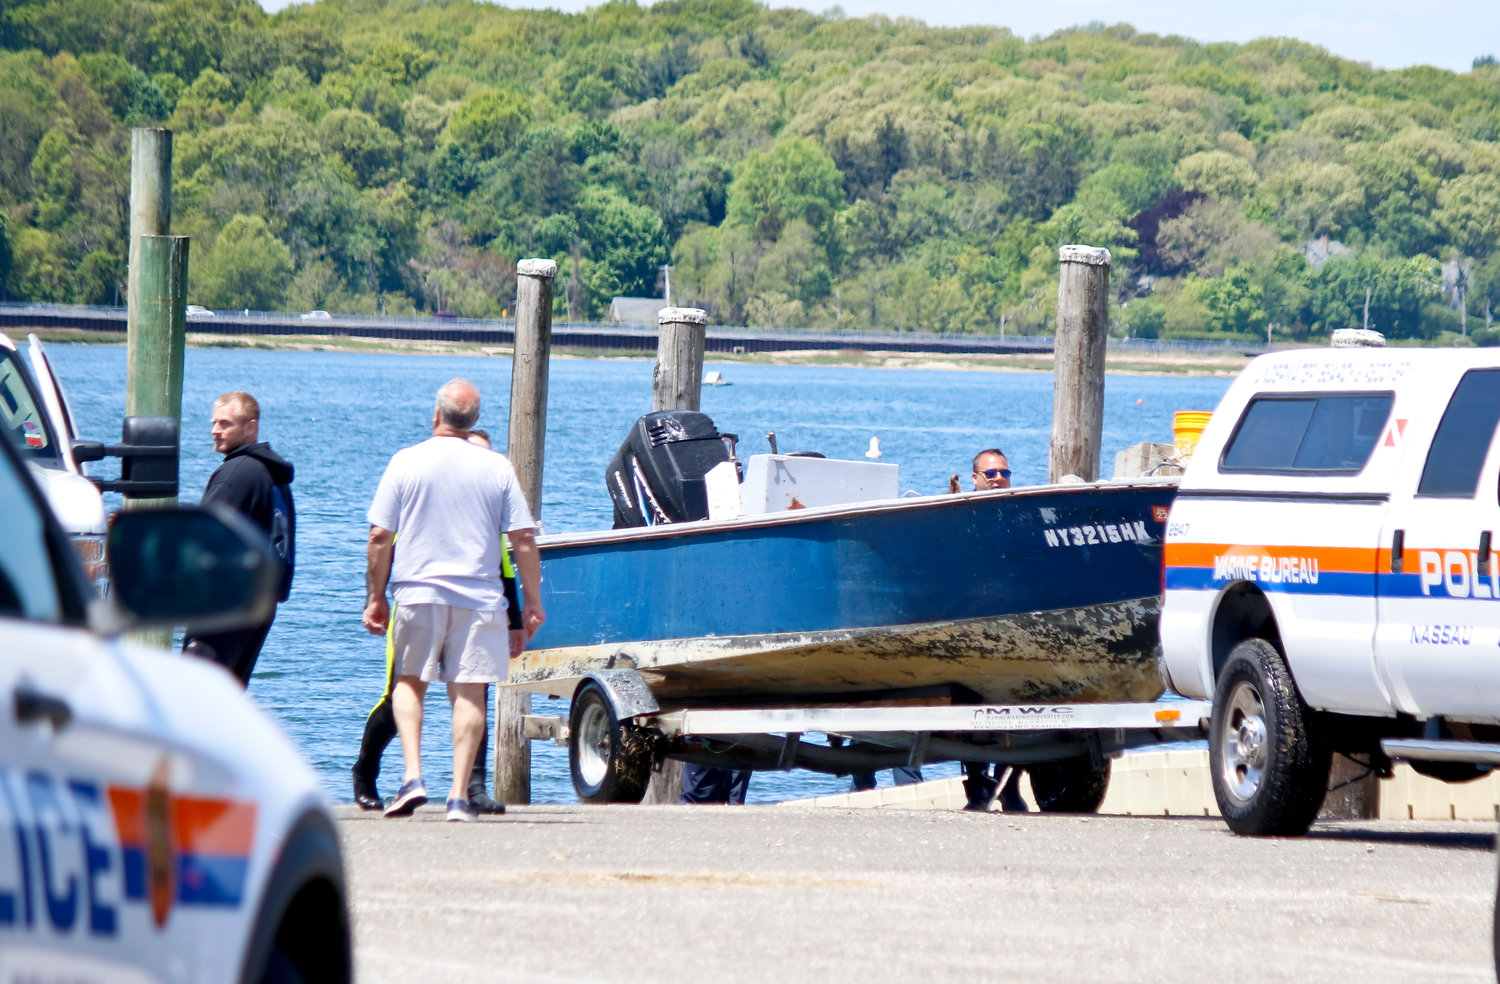 The Nassau County Marine Bureau brought Mike Kennedy's boat back to the marina.